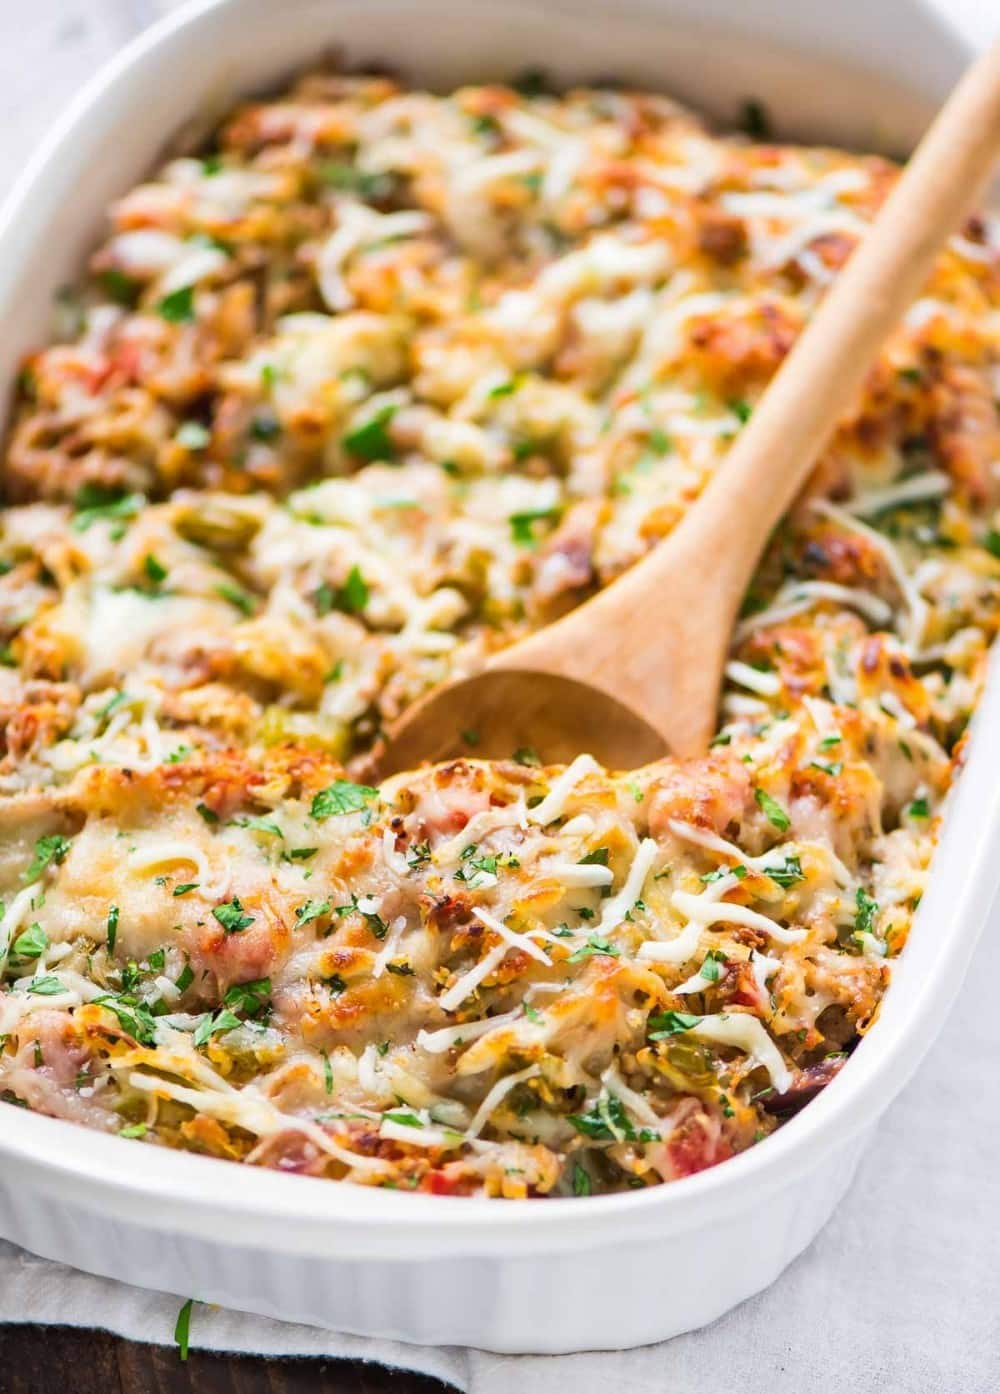 Check out 17 Easy Low Carb Casseroles at https://homemaderecipes.com/low-carb-casseroles-easy/